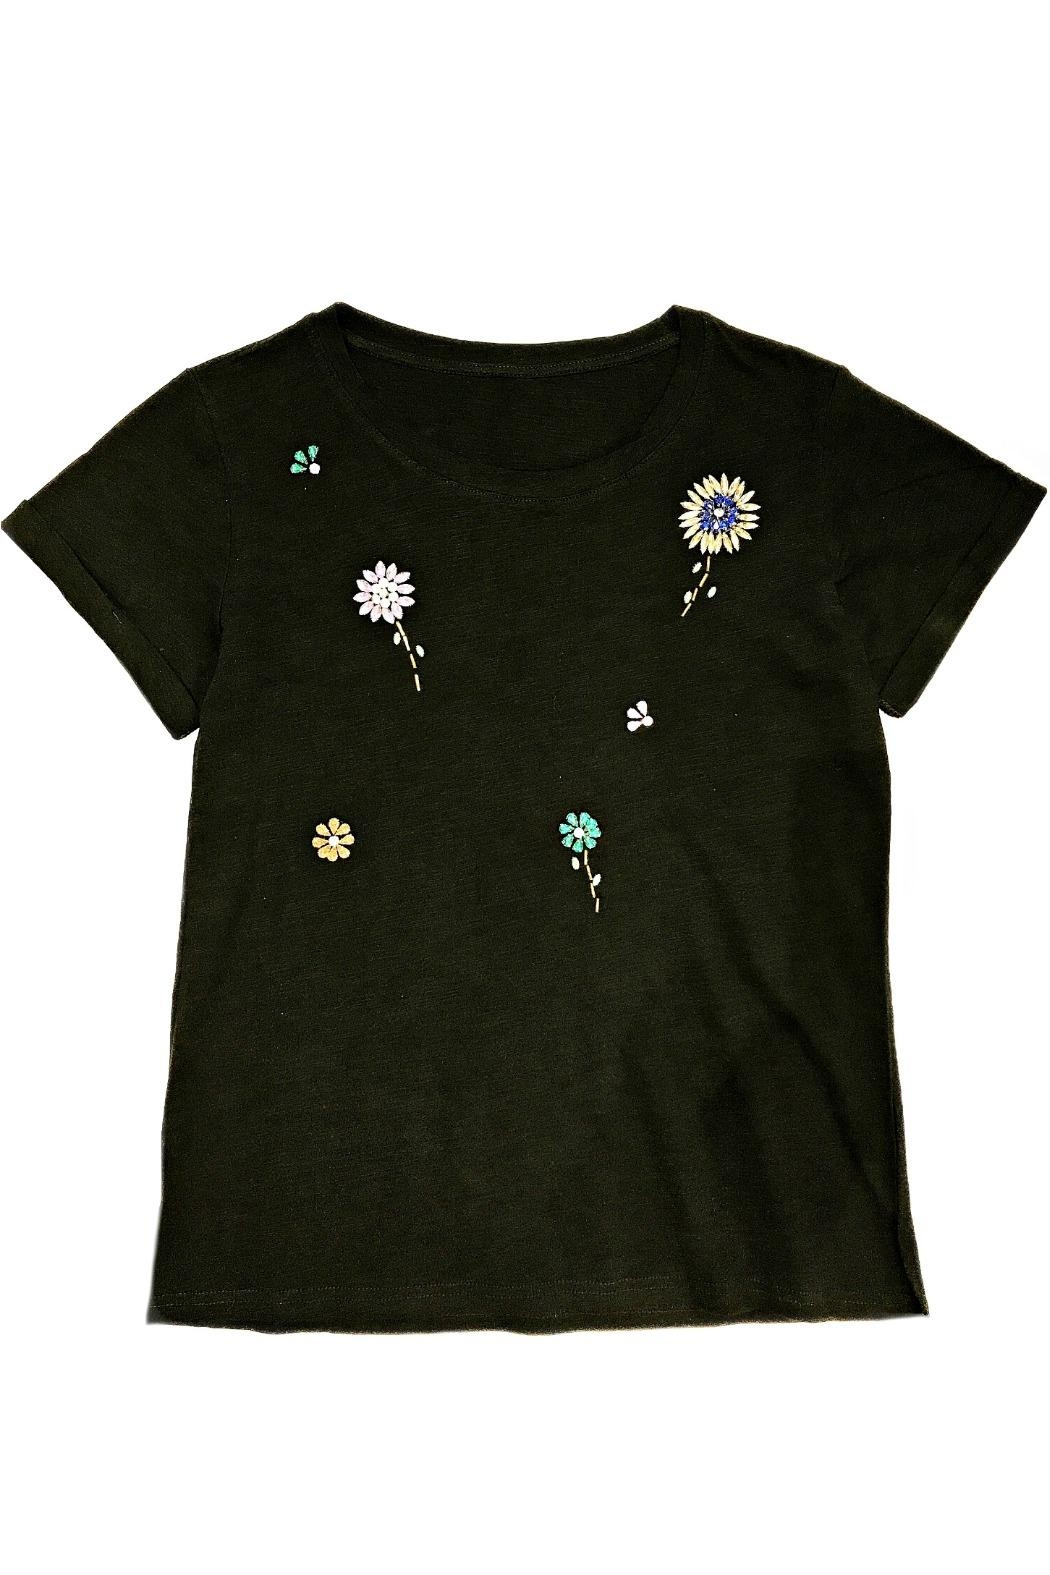 ANTONELLO SERIO Jewel Floral Tee - Front Cropped Image